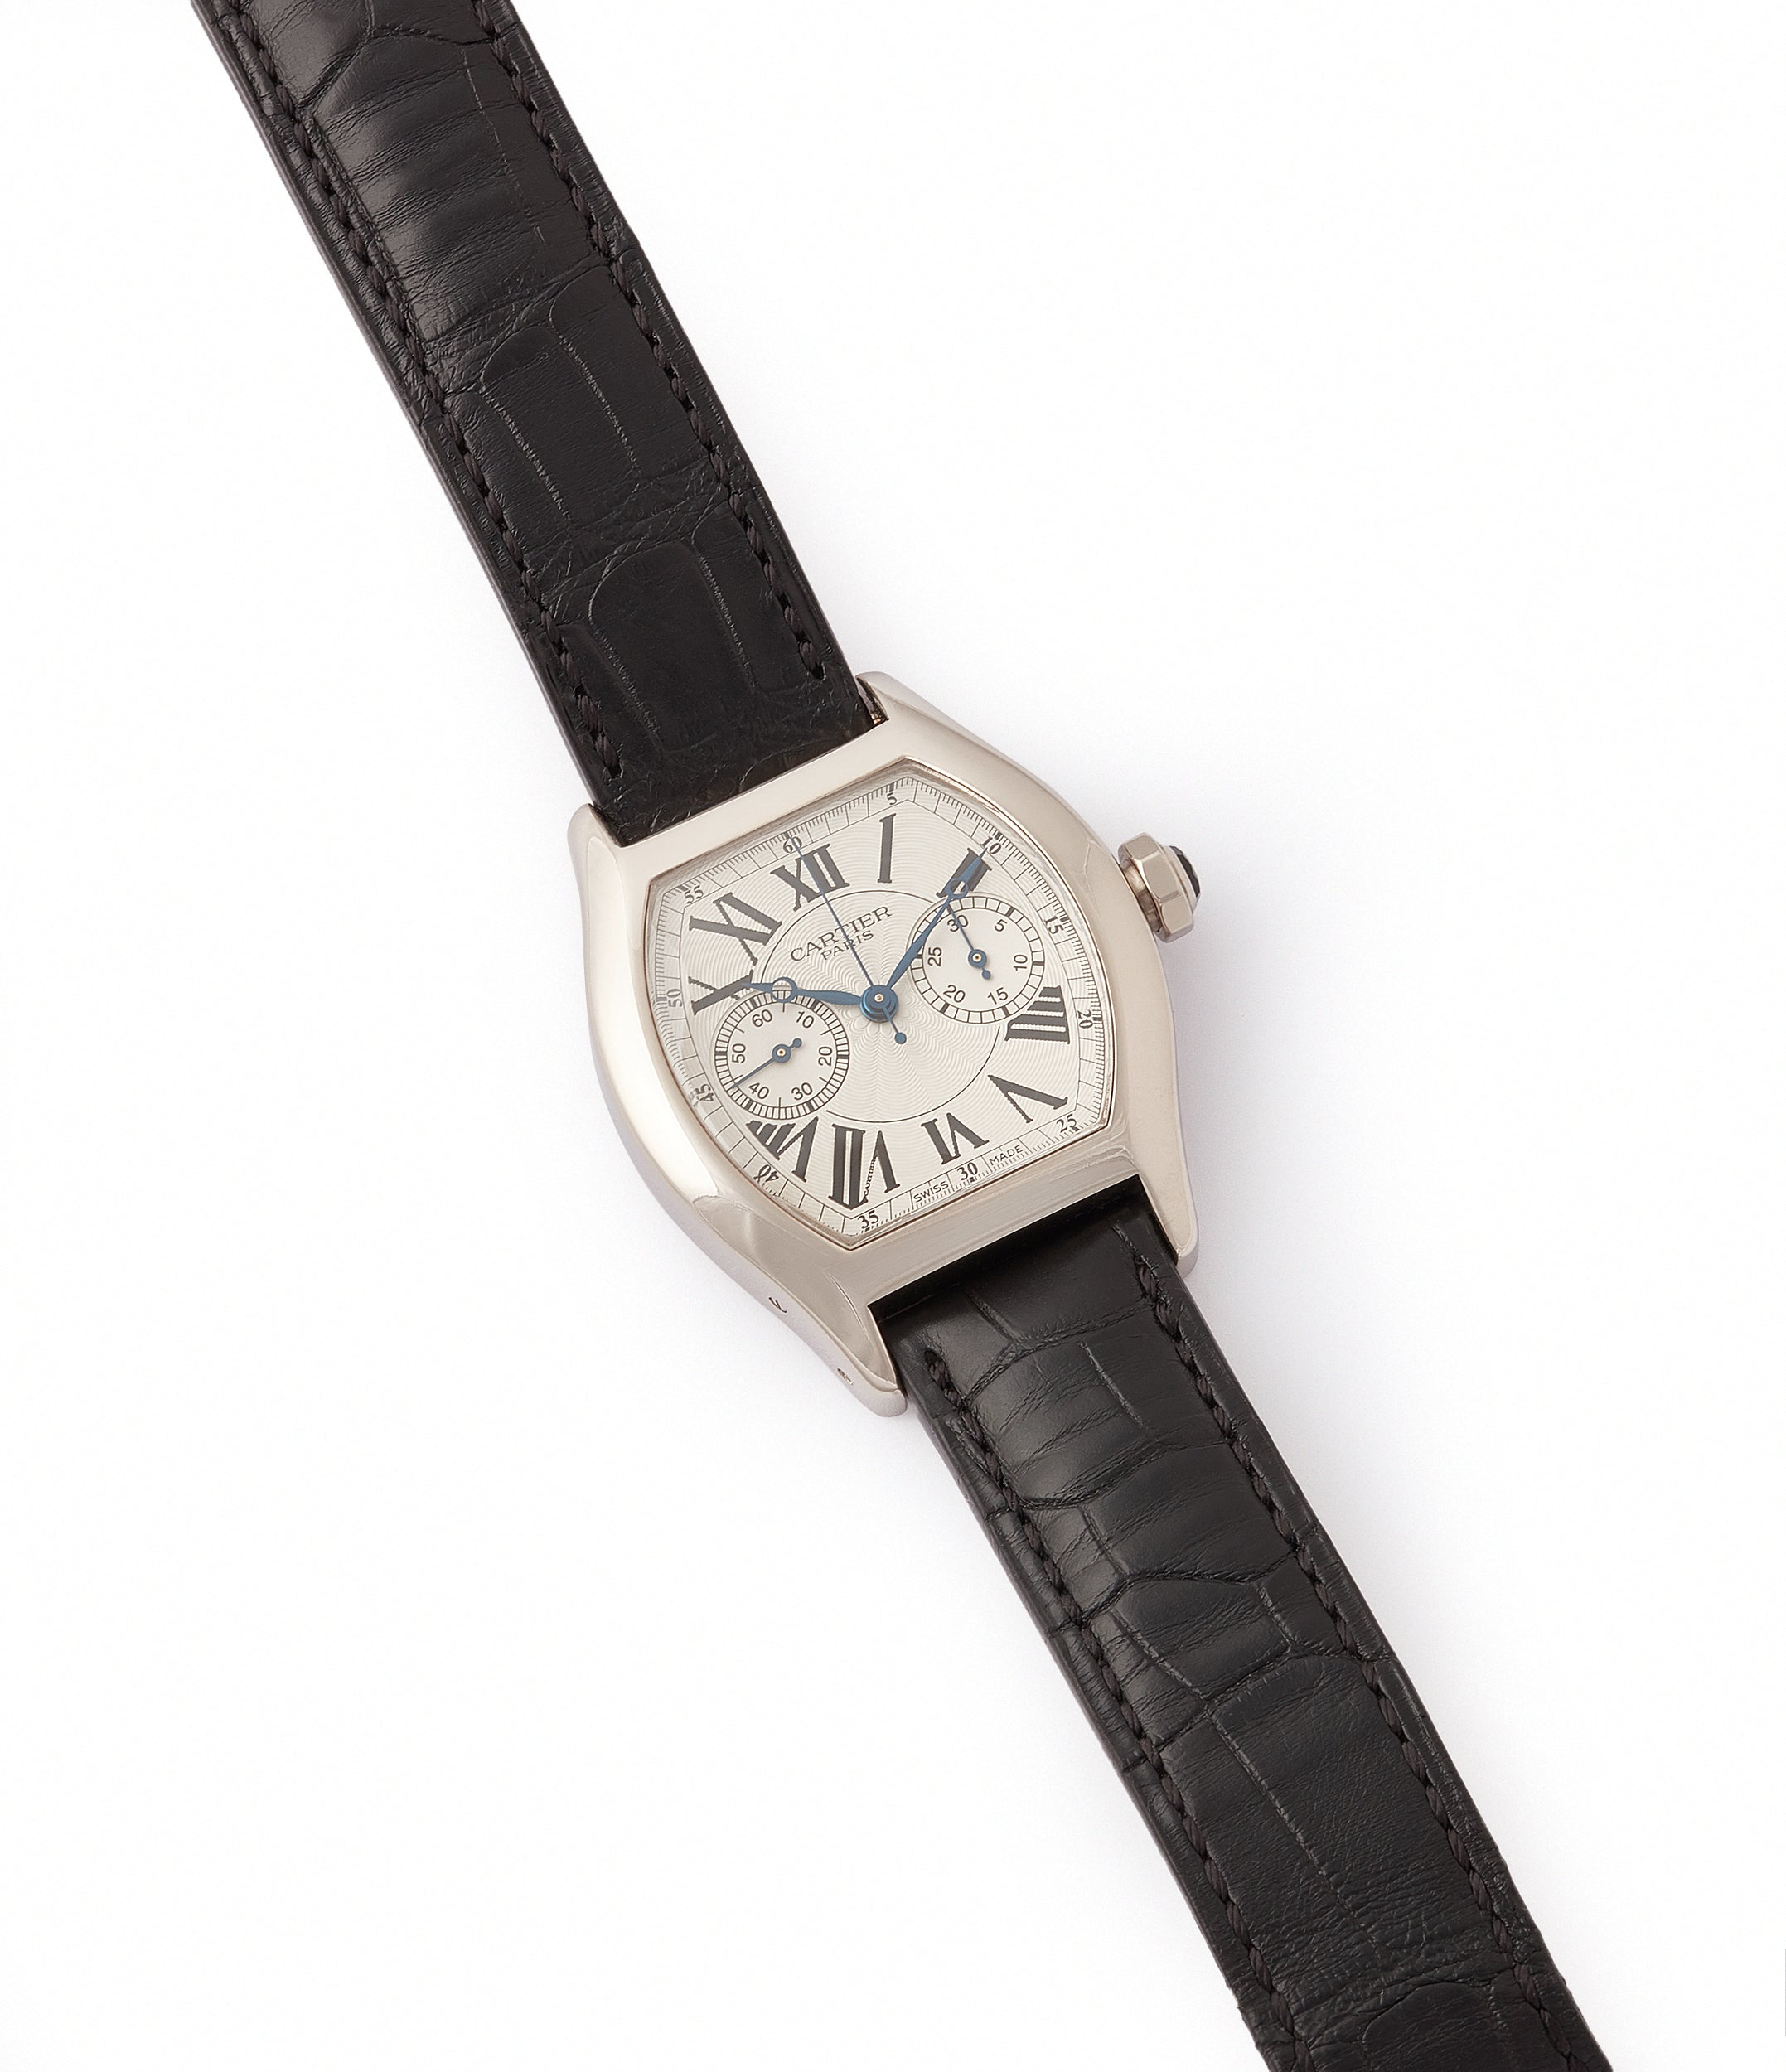 shop Cartier Monopusher Monopoussoir Ref. 2714 white gold rare dress watch for sale online at A Collected Man London UK specialist of rare watches